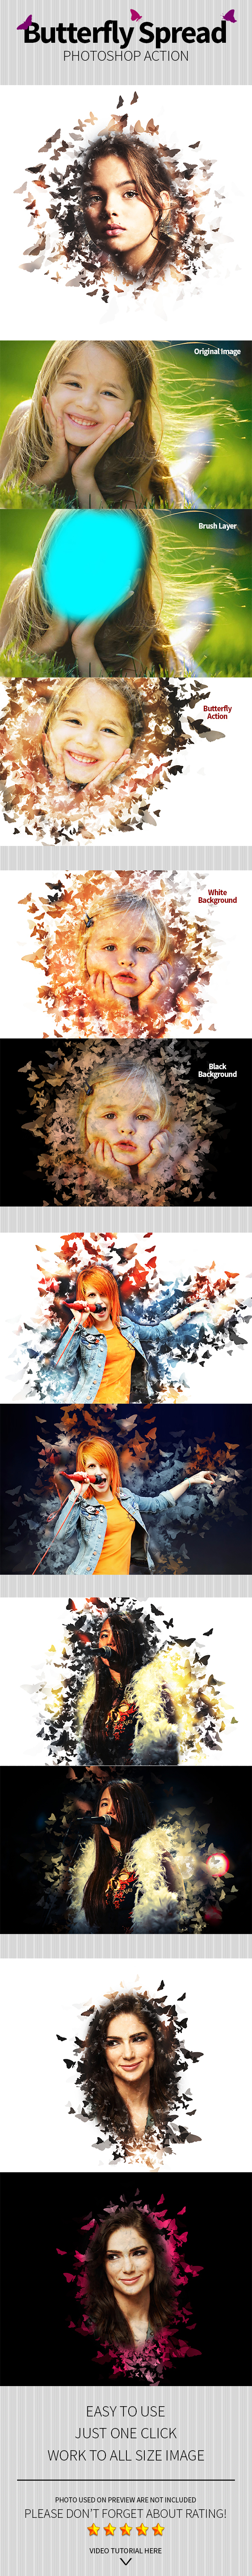 Butterfly Spread Photoshop Action - Photo Effects Actions